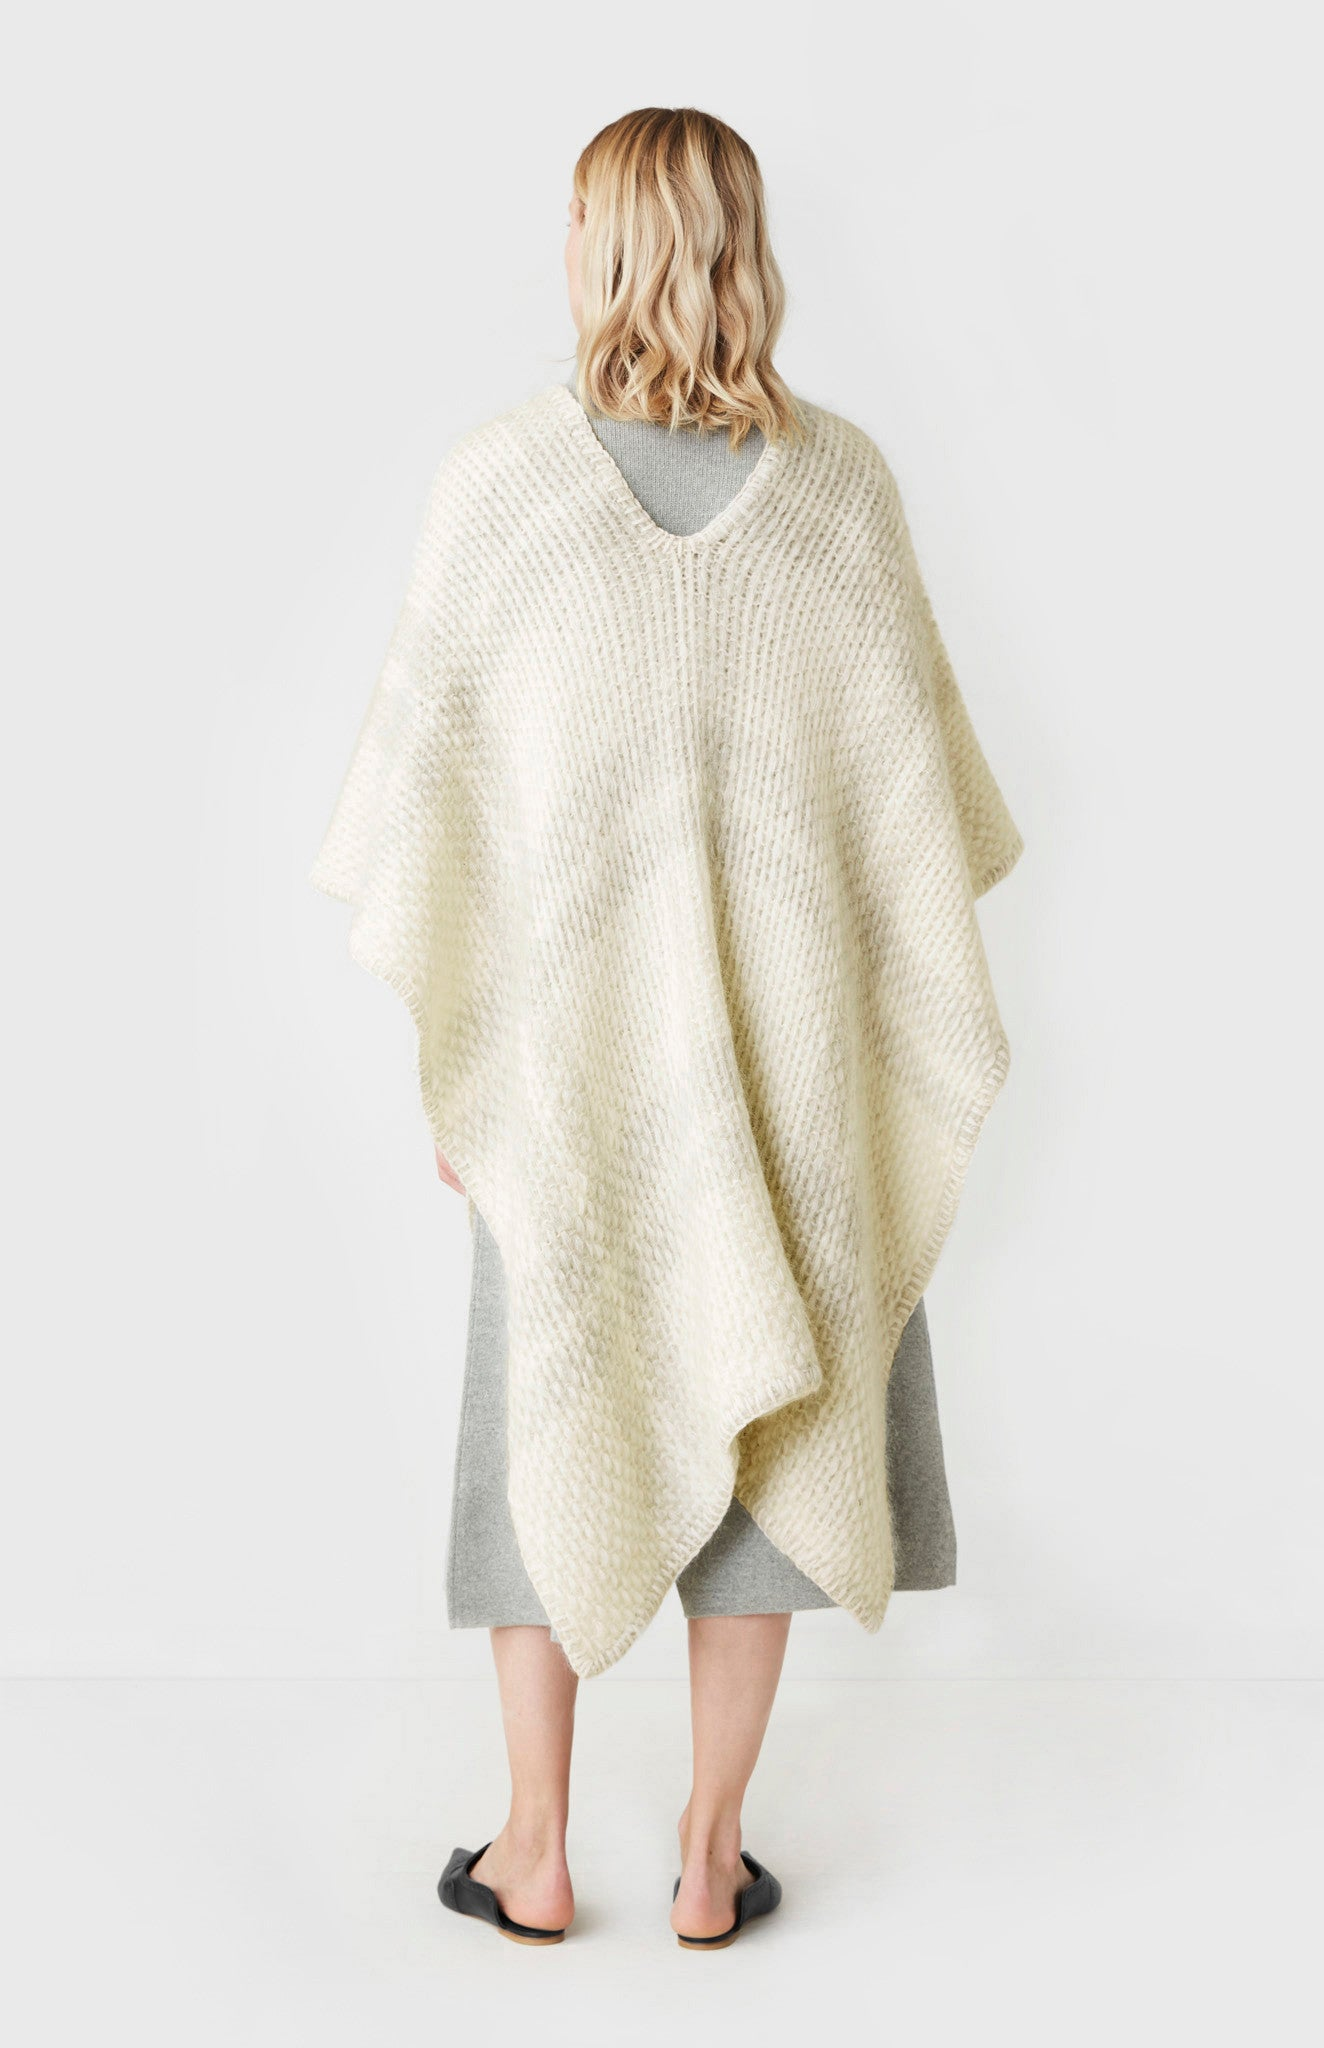 Soft Knit Poncho In Off White/Salt & Pepper